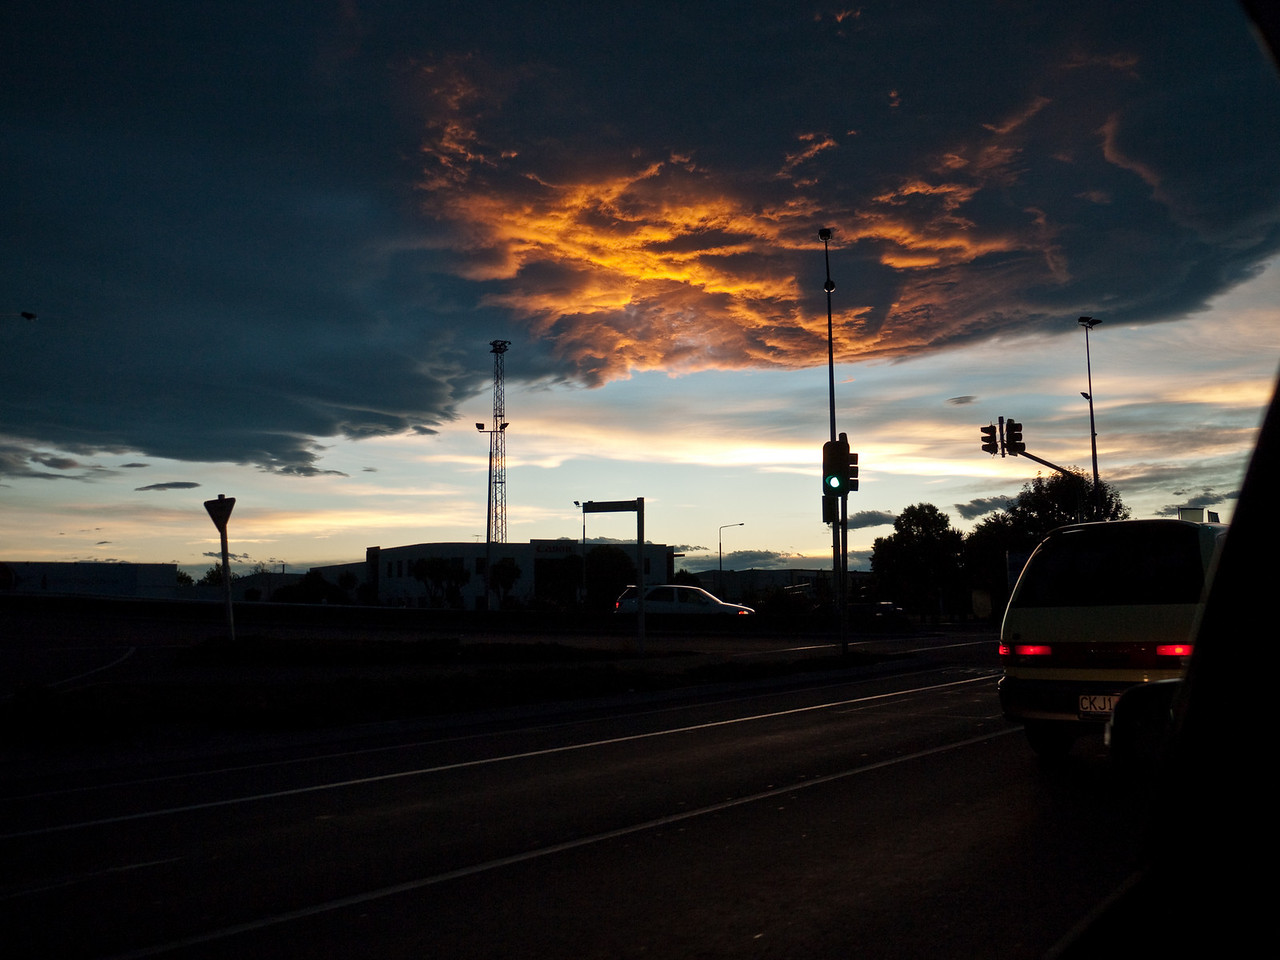 Christchurch sunset, the best I could do from a moving car